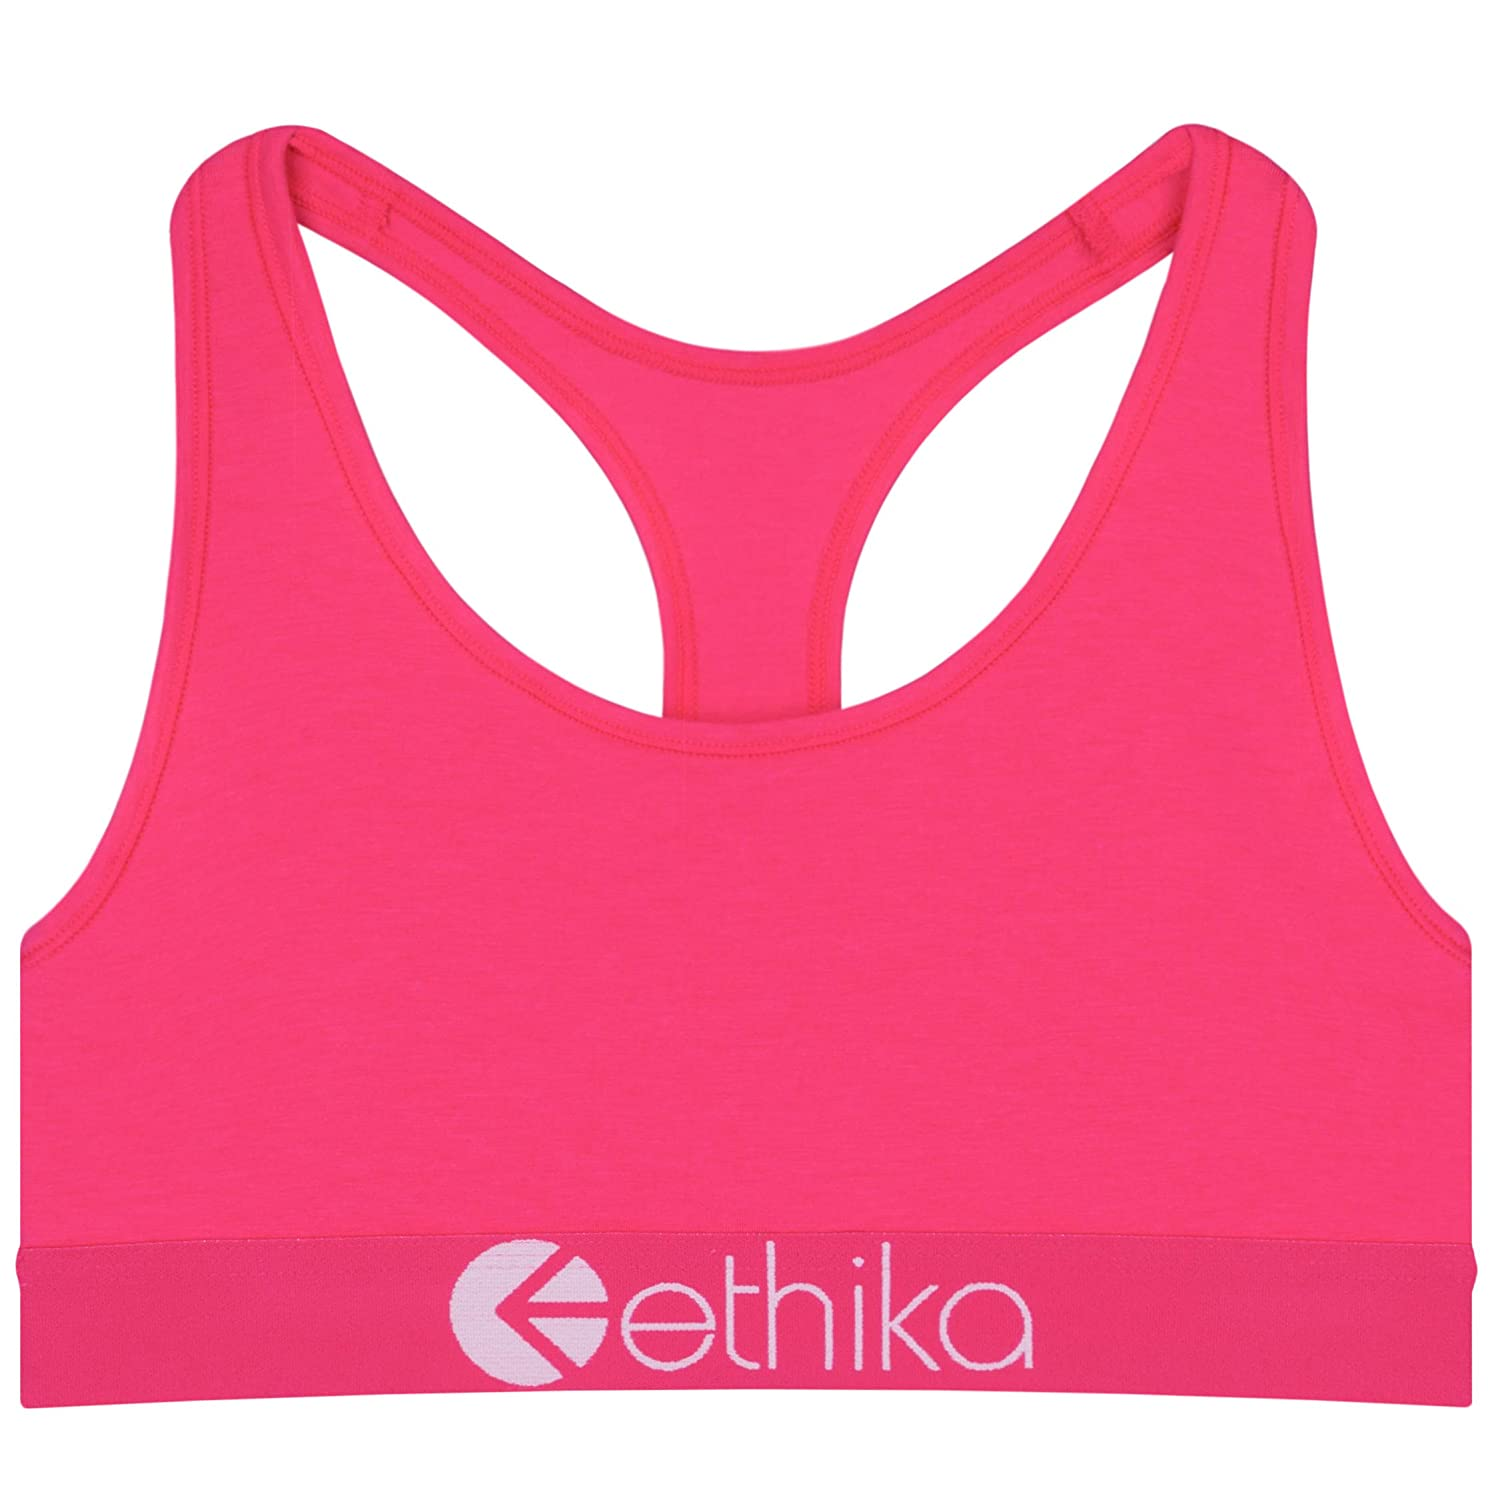 Ethika Womens - The Sports Bra Punk Pink at Amazon Women s Clothing store